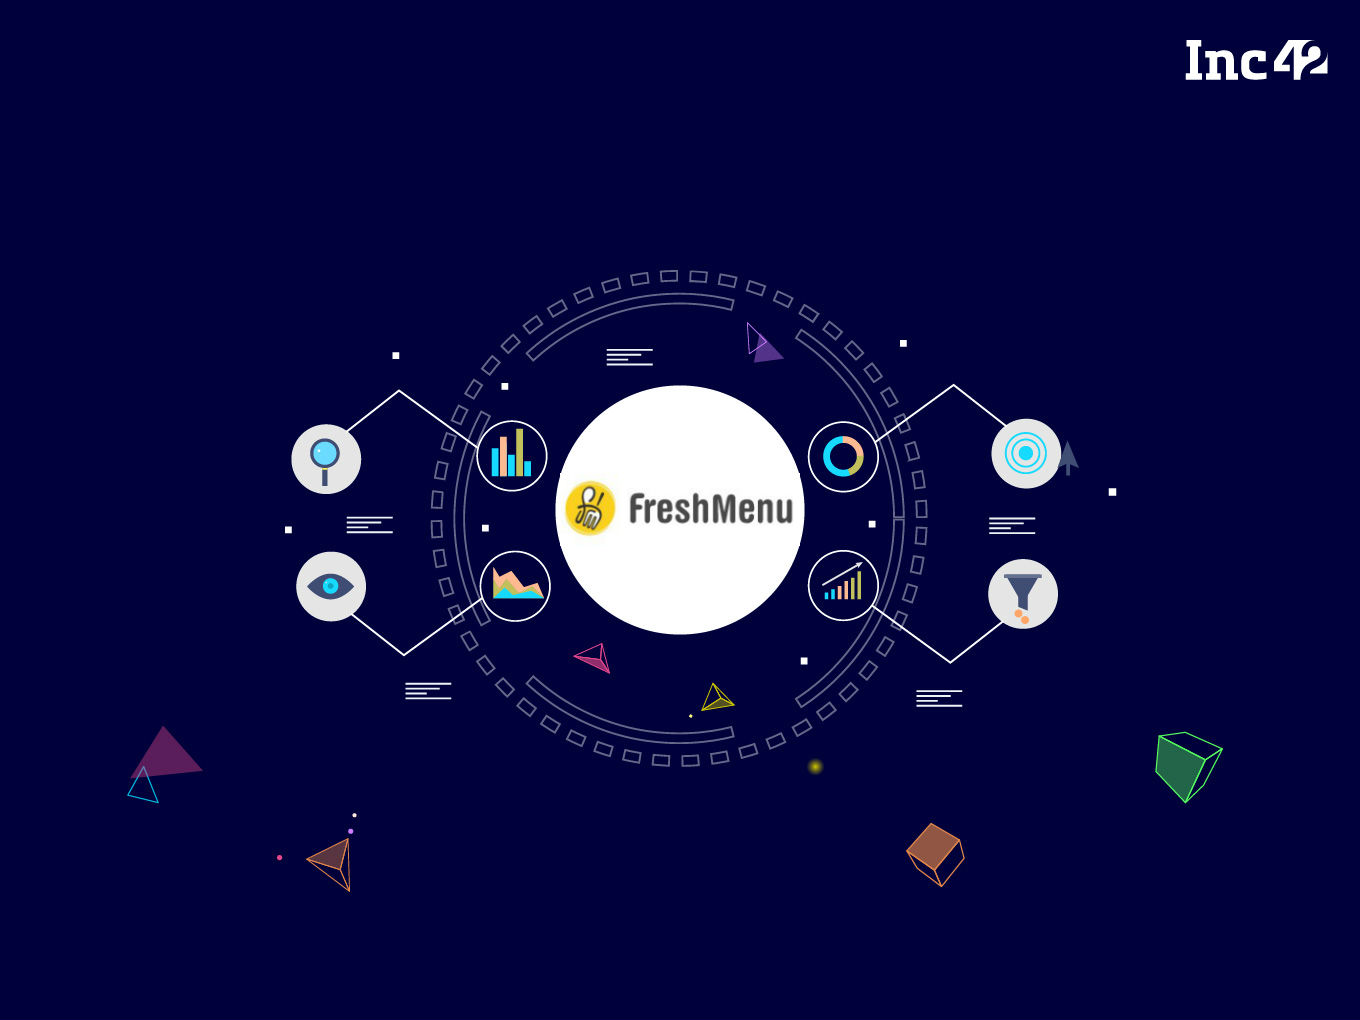 [What The Financials] FreshMenu Shreds Spending In FY19 To Back Up Revenue Growth